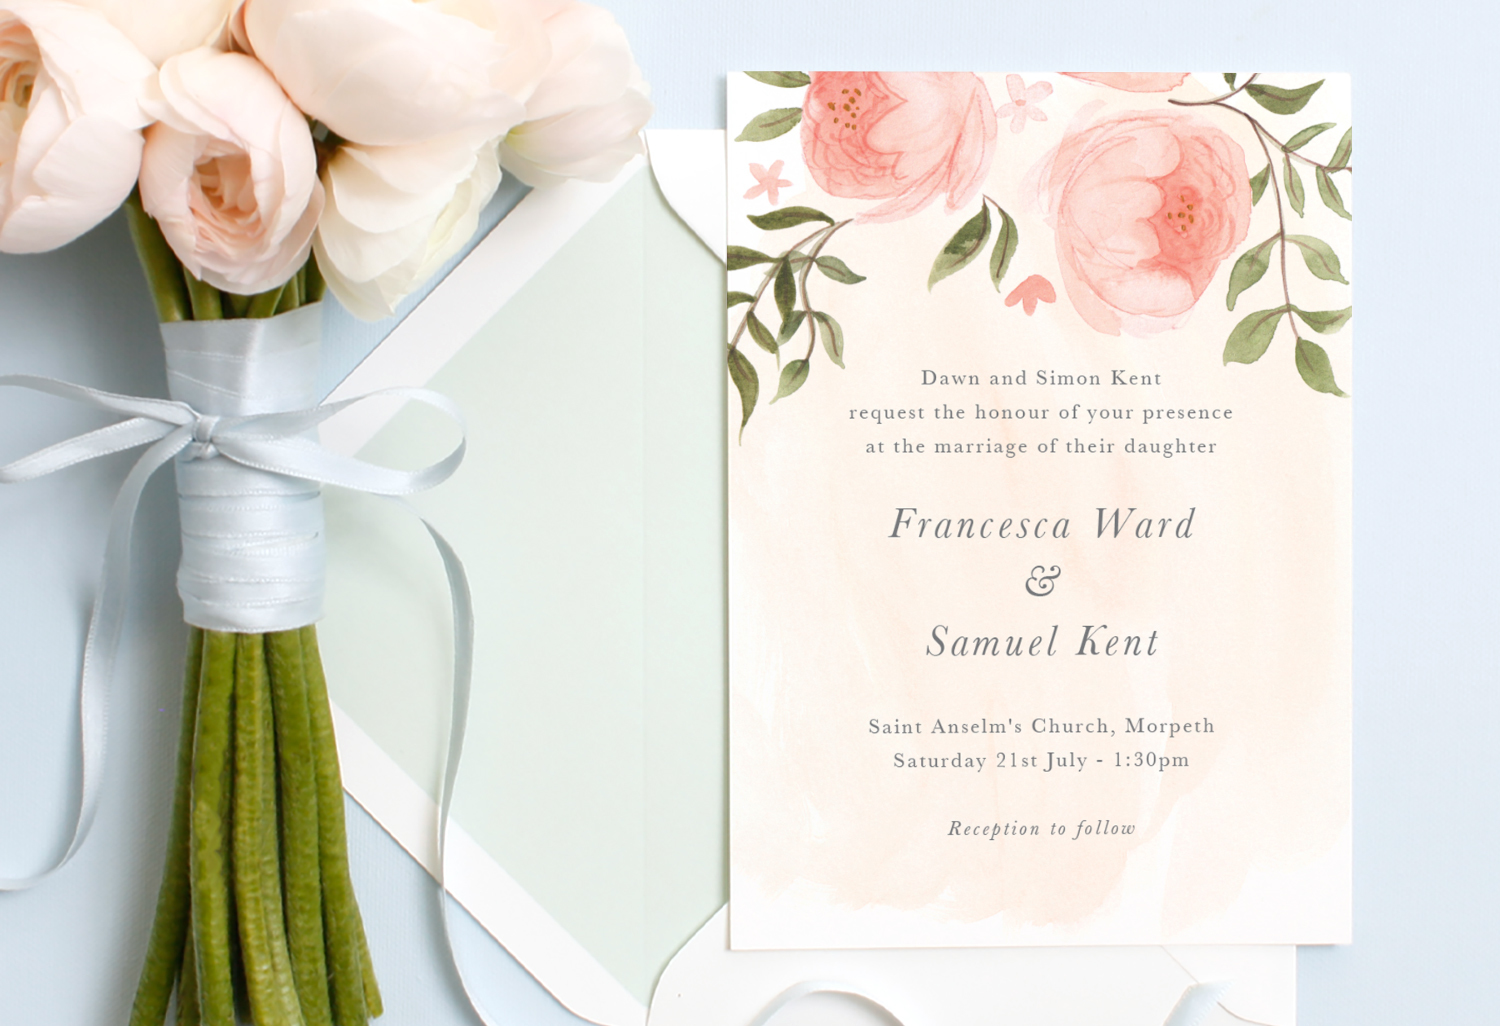 bride's parents hosting wedding invitation wording